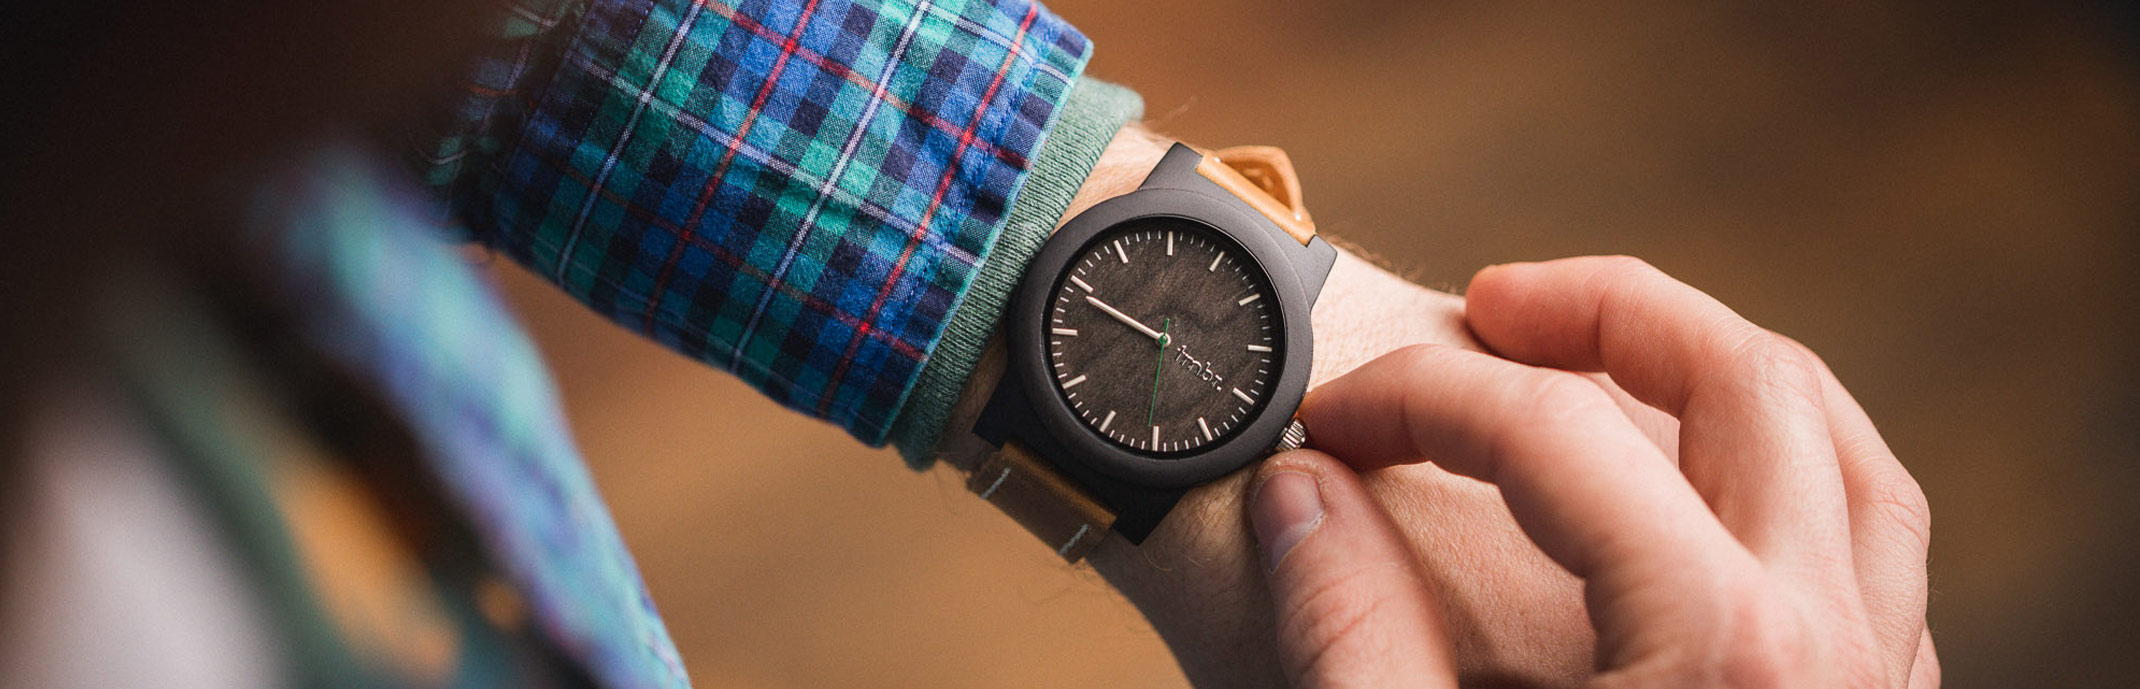 Tmbr. Wooden Watches For Men